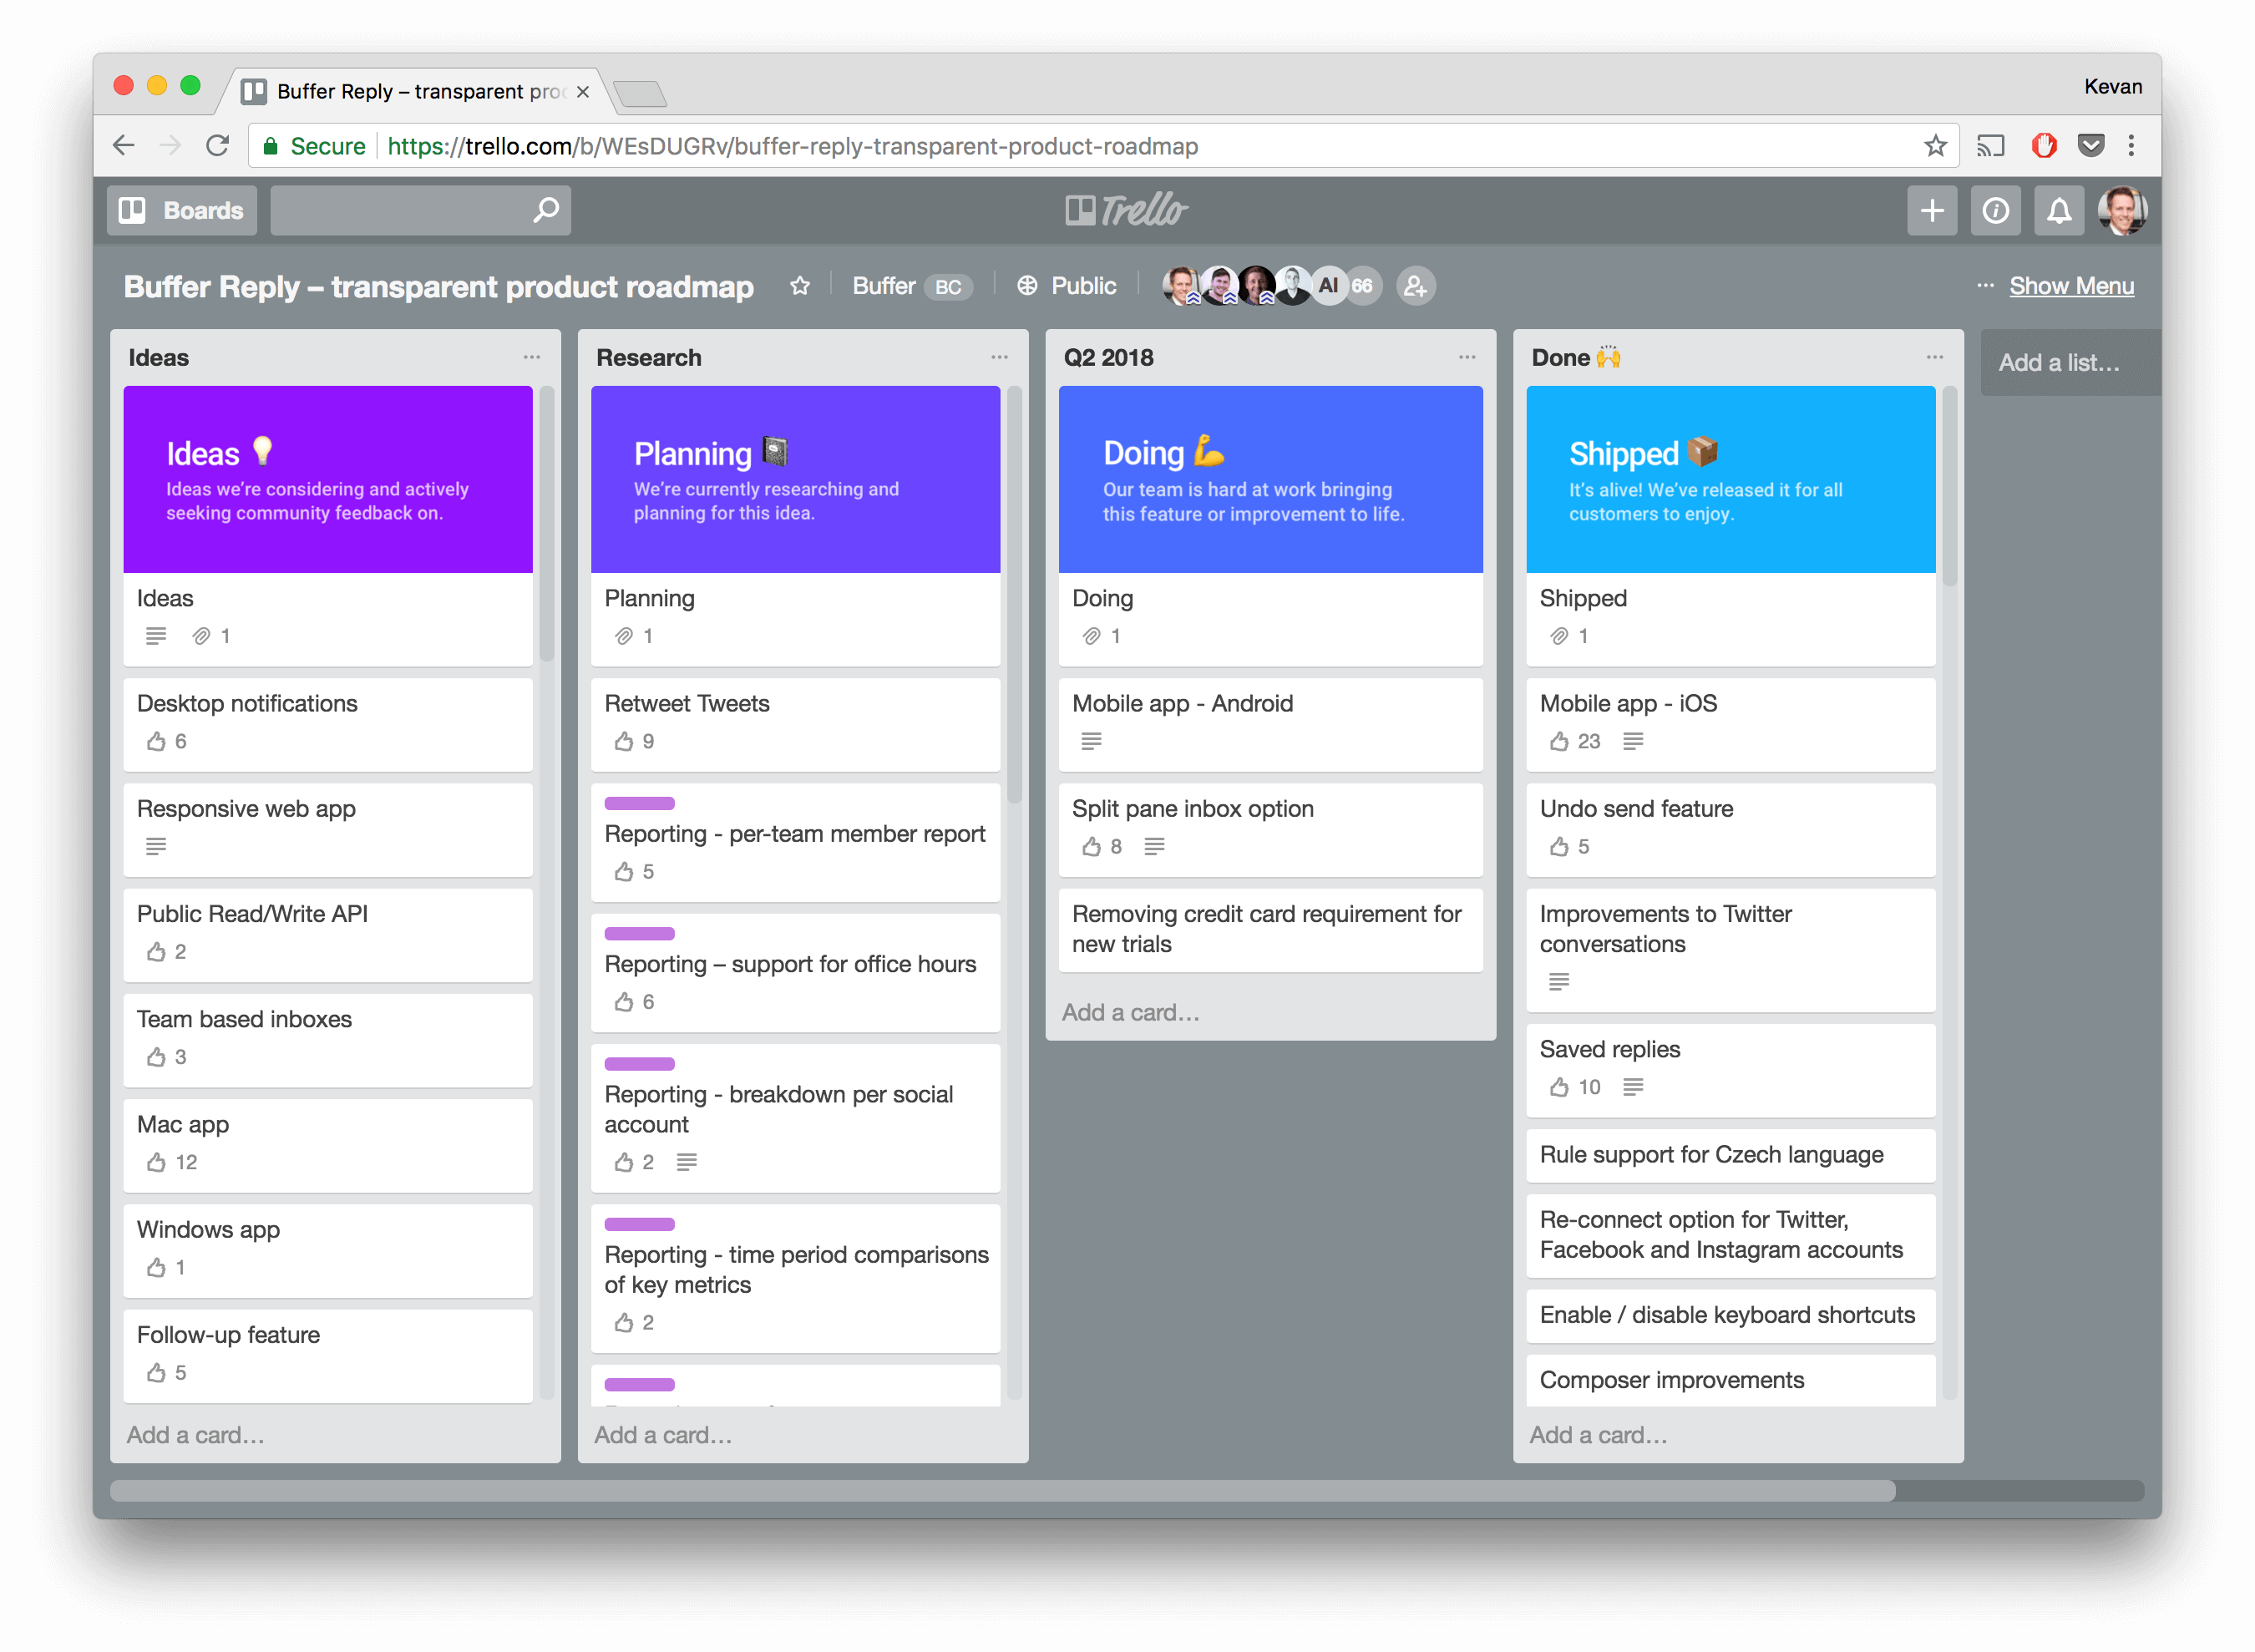 Sample Trello Board from Buffer for Product Roadmap